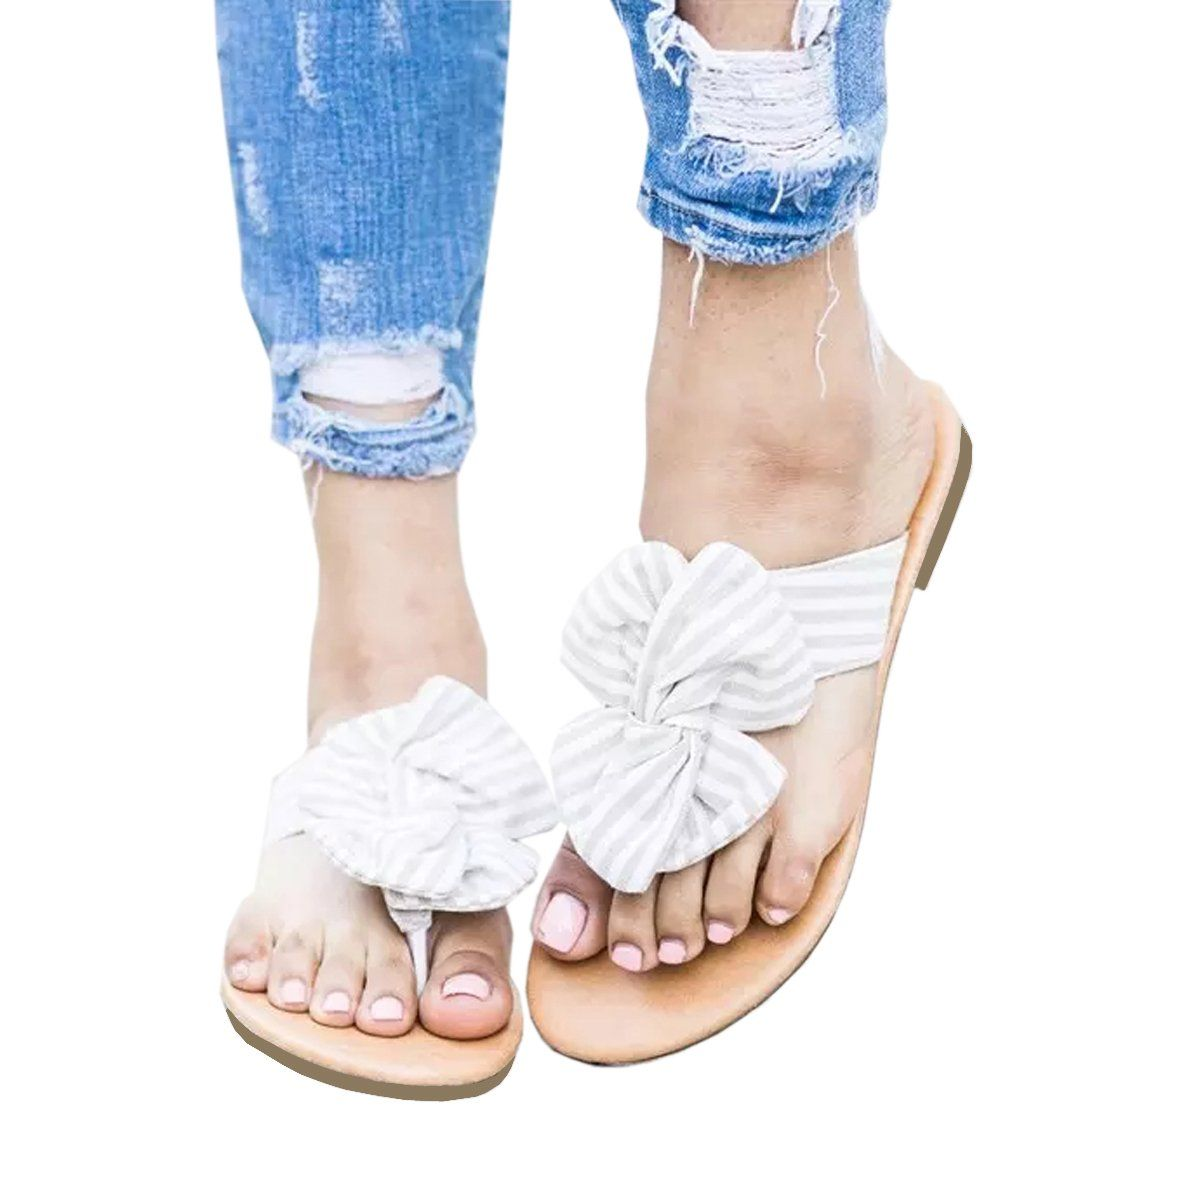 b858e27ed Womens Sandals Flat Stripped Bow Slider Gladiator Open Toe Thong Flip Flop  Casual Summer Shoes -- Do hope you actually enjoy the photo.